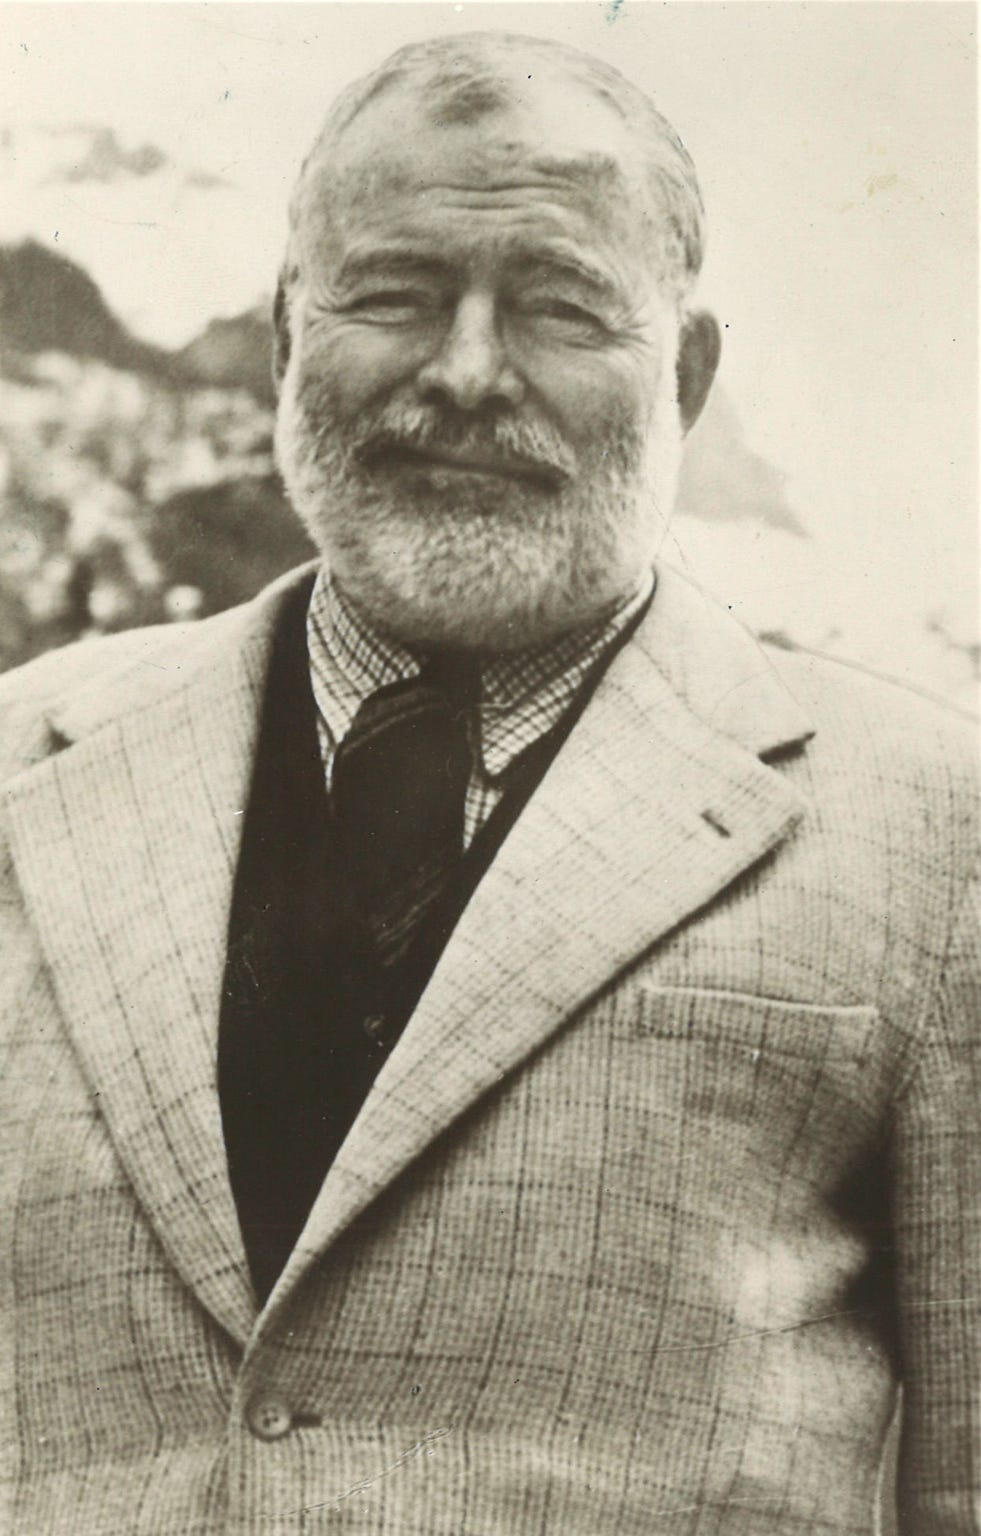 Ernest Hemingway, winner of the Pulitzer and Nobel prizes, agreed to an interview with an 18-year-old Del Mar College student when he stopped briefly in Corpus Christi in March 1959. Hemingway normallly hated interviews.